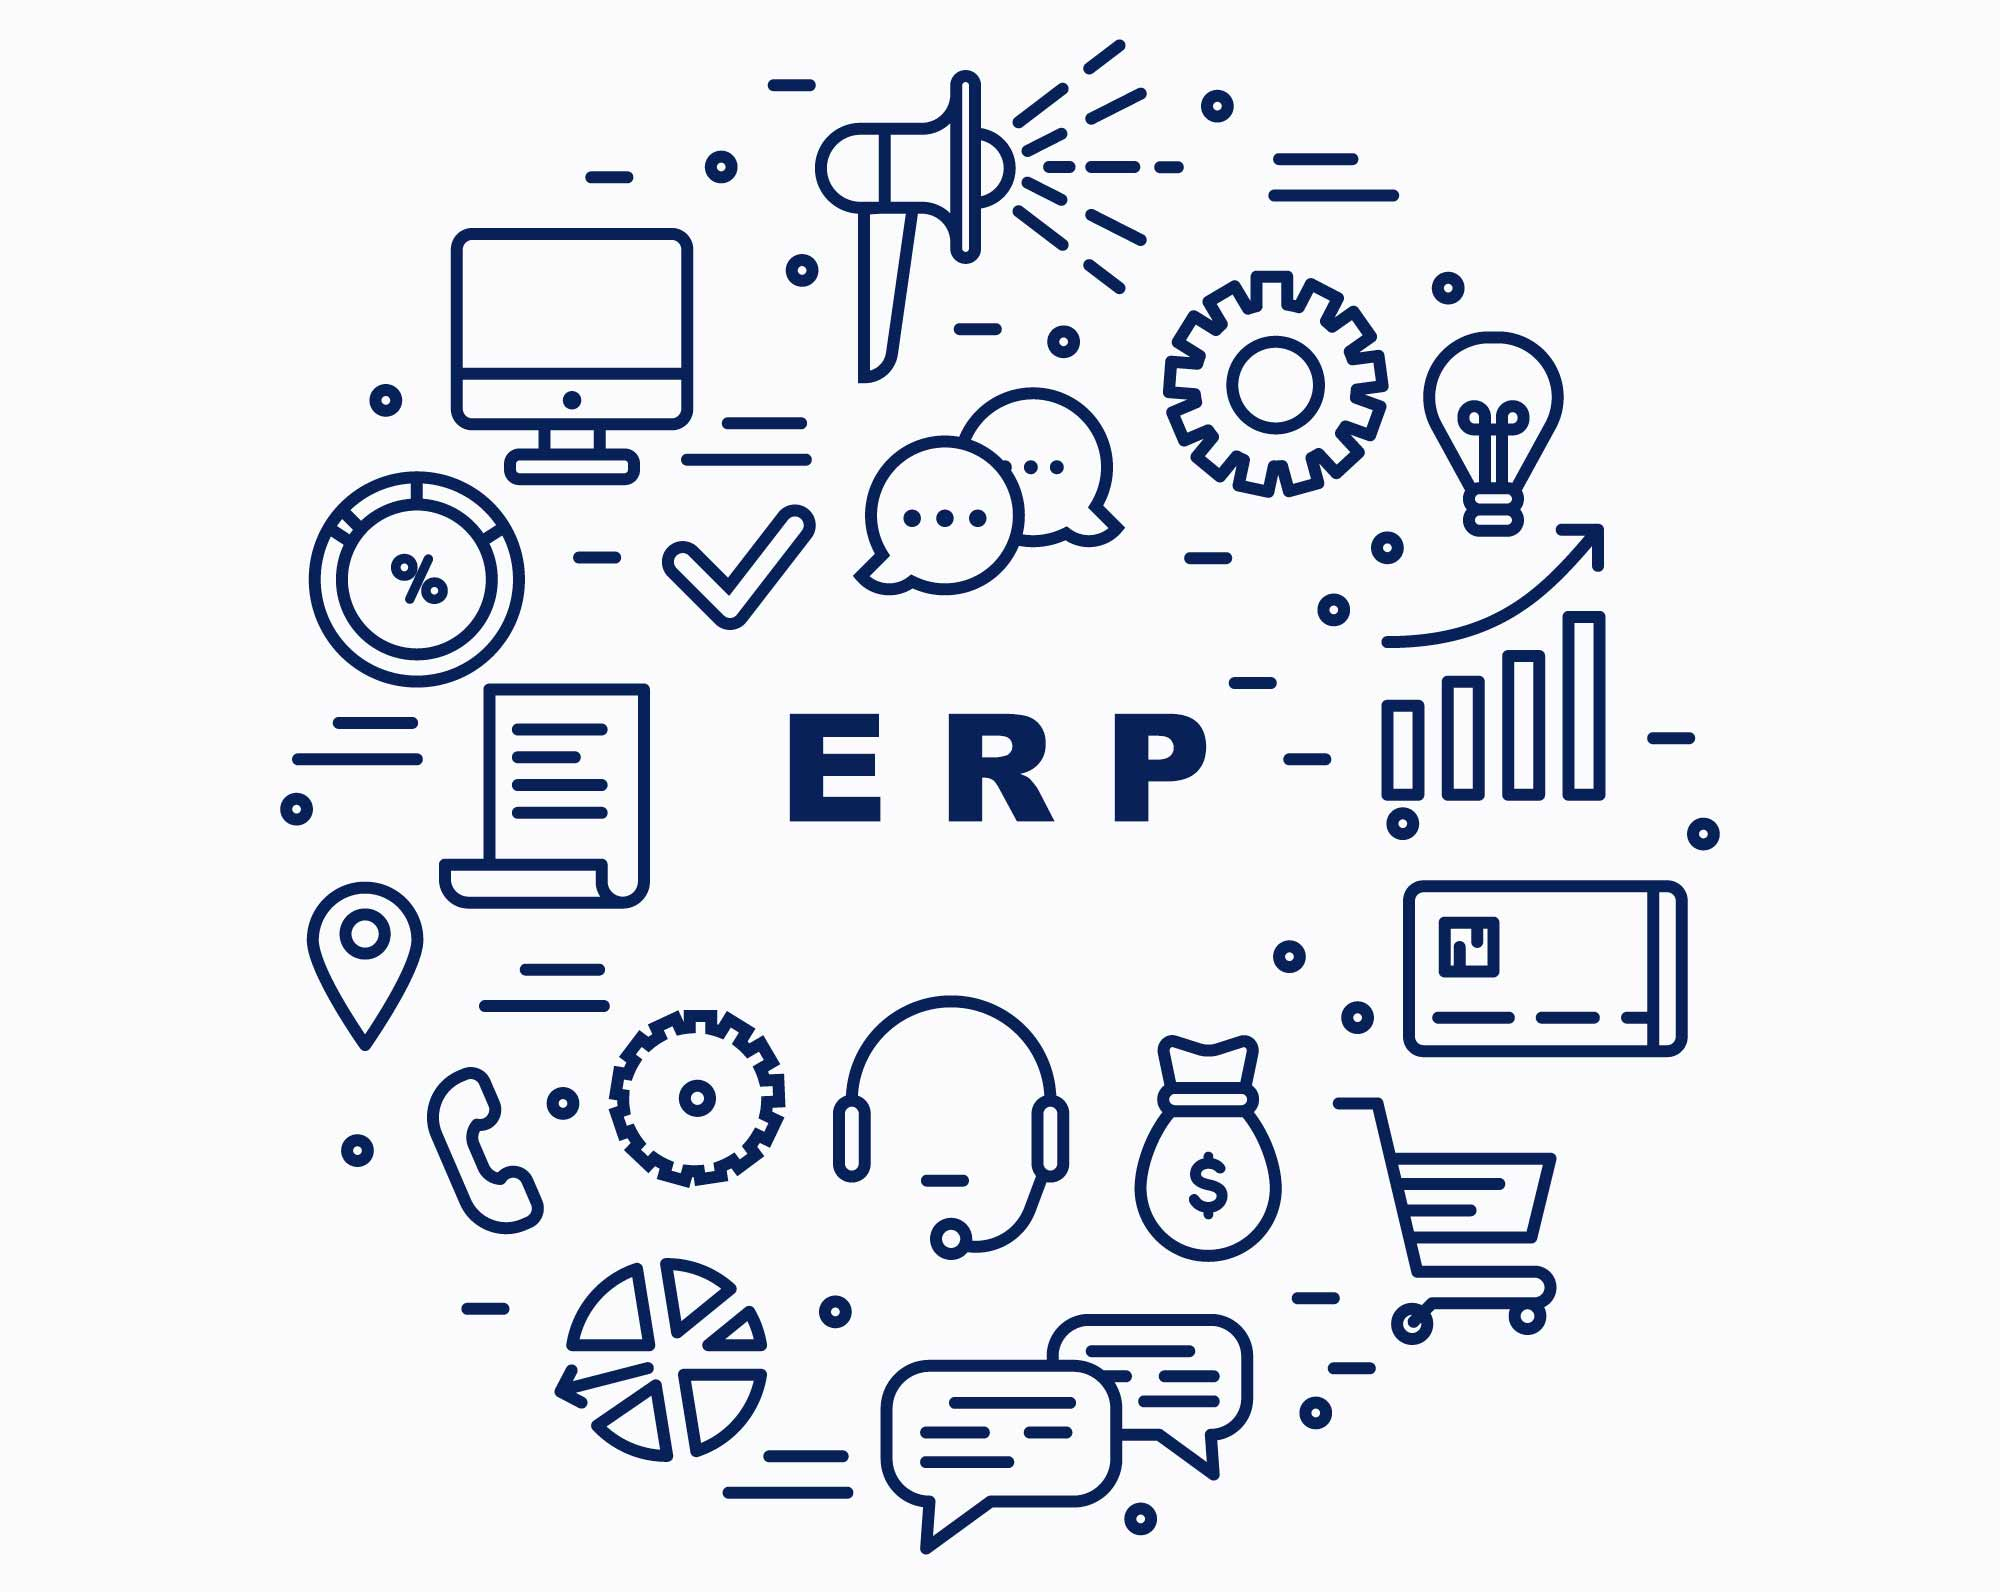 Companies are developing ERP software with superior architecture and slick designs